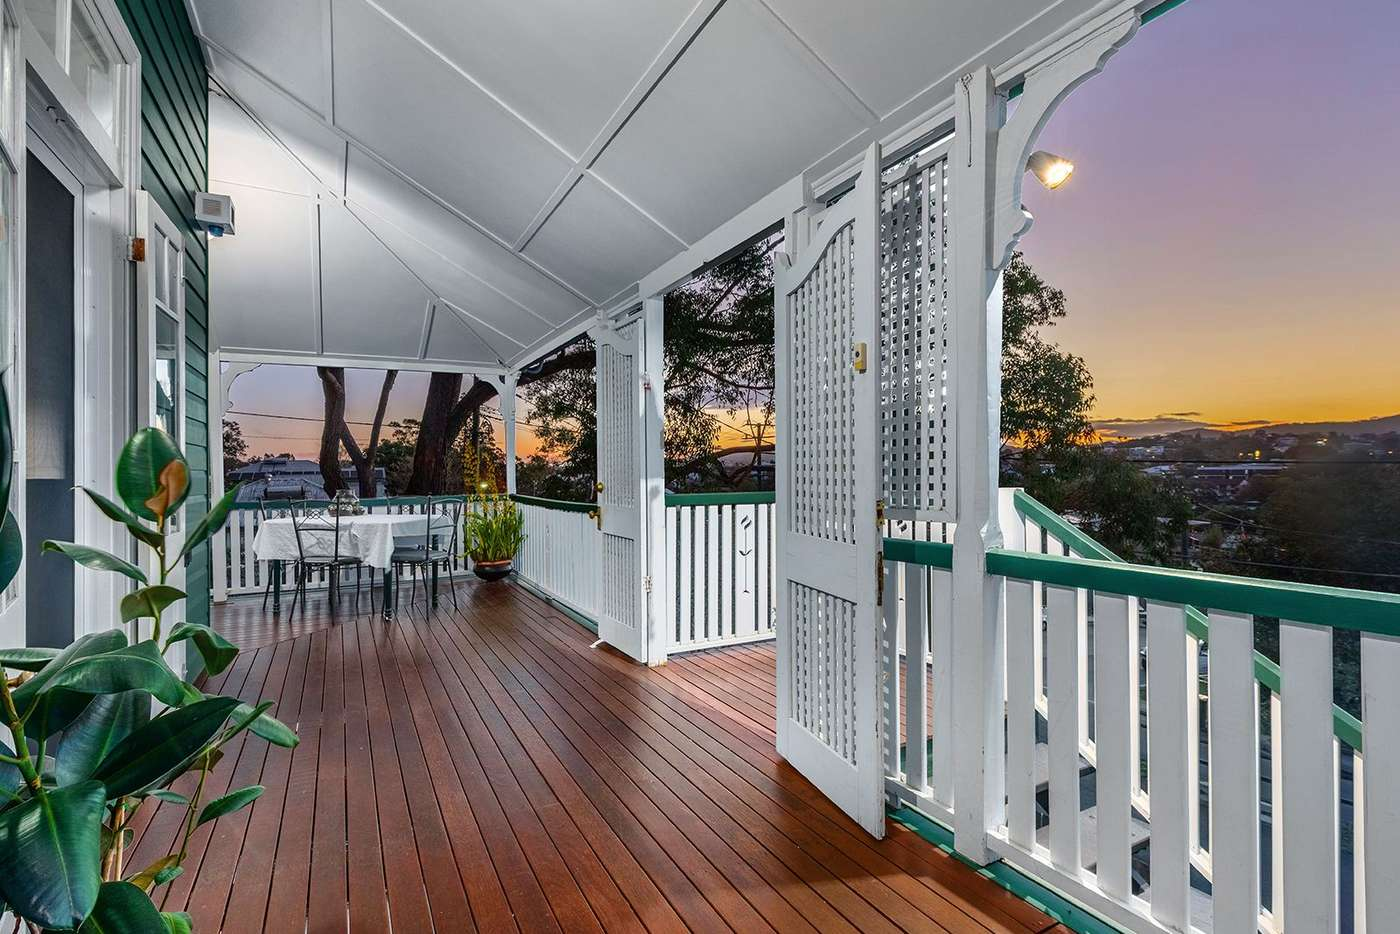 Main view of Homely house listing, 27 Gaunt Street, Newmarket QLD 4051